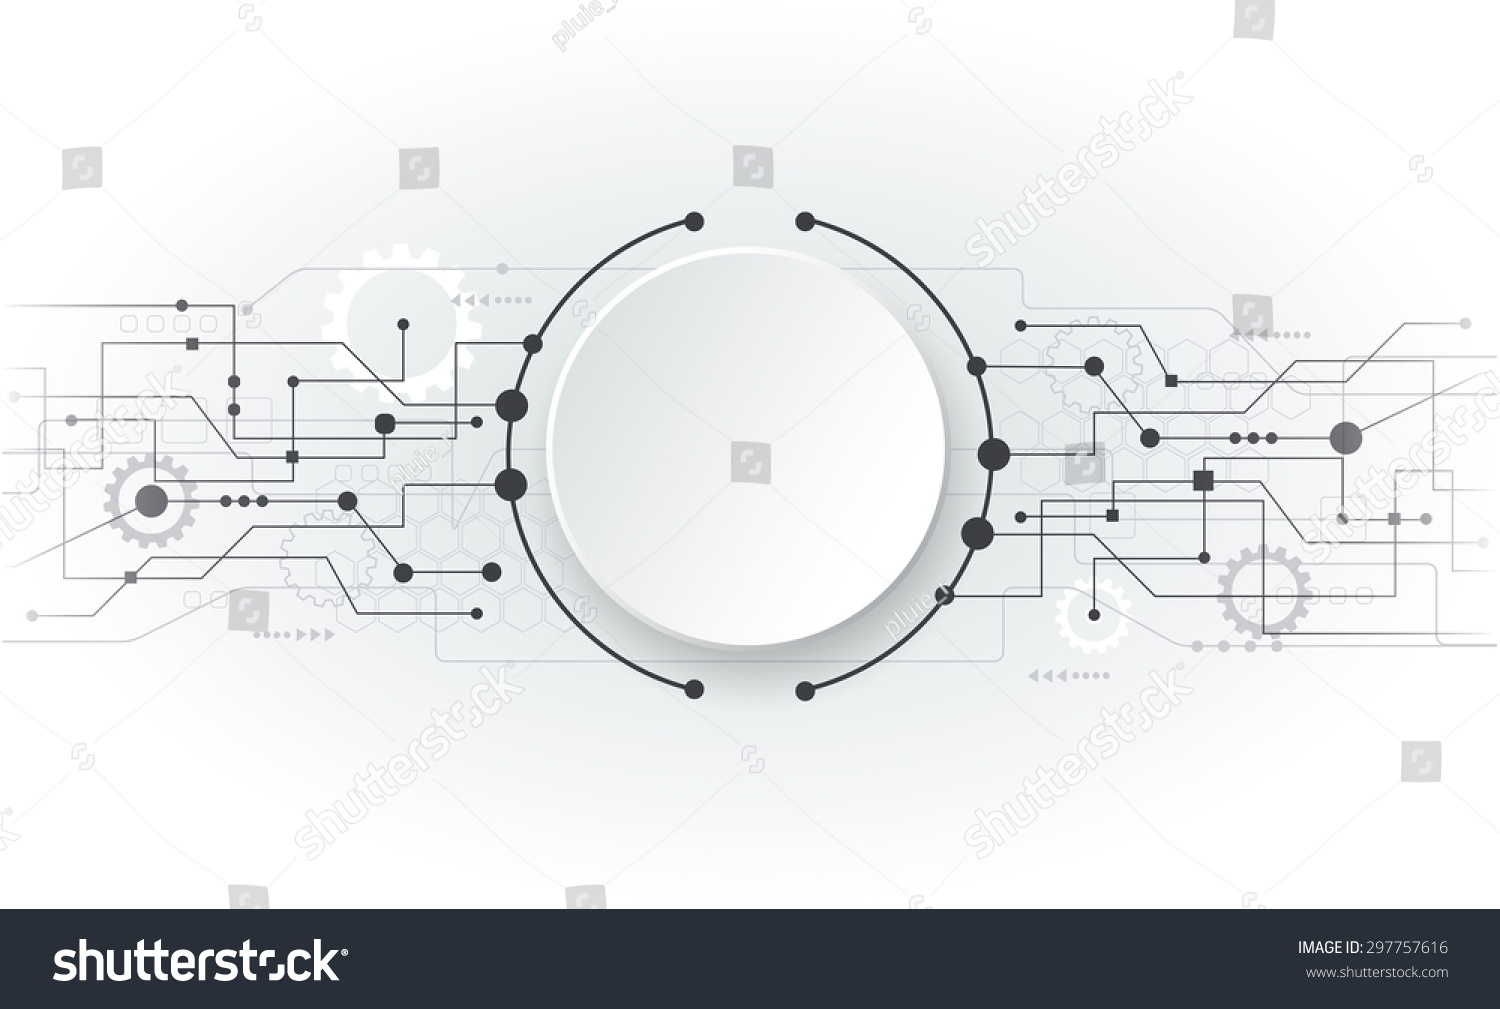 Abstract Circuit Board Technology Vector Background Stock Auto Image 45284500 Illustration Futuristic